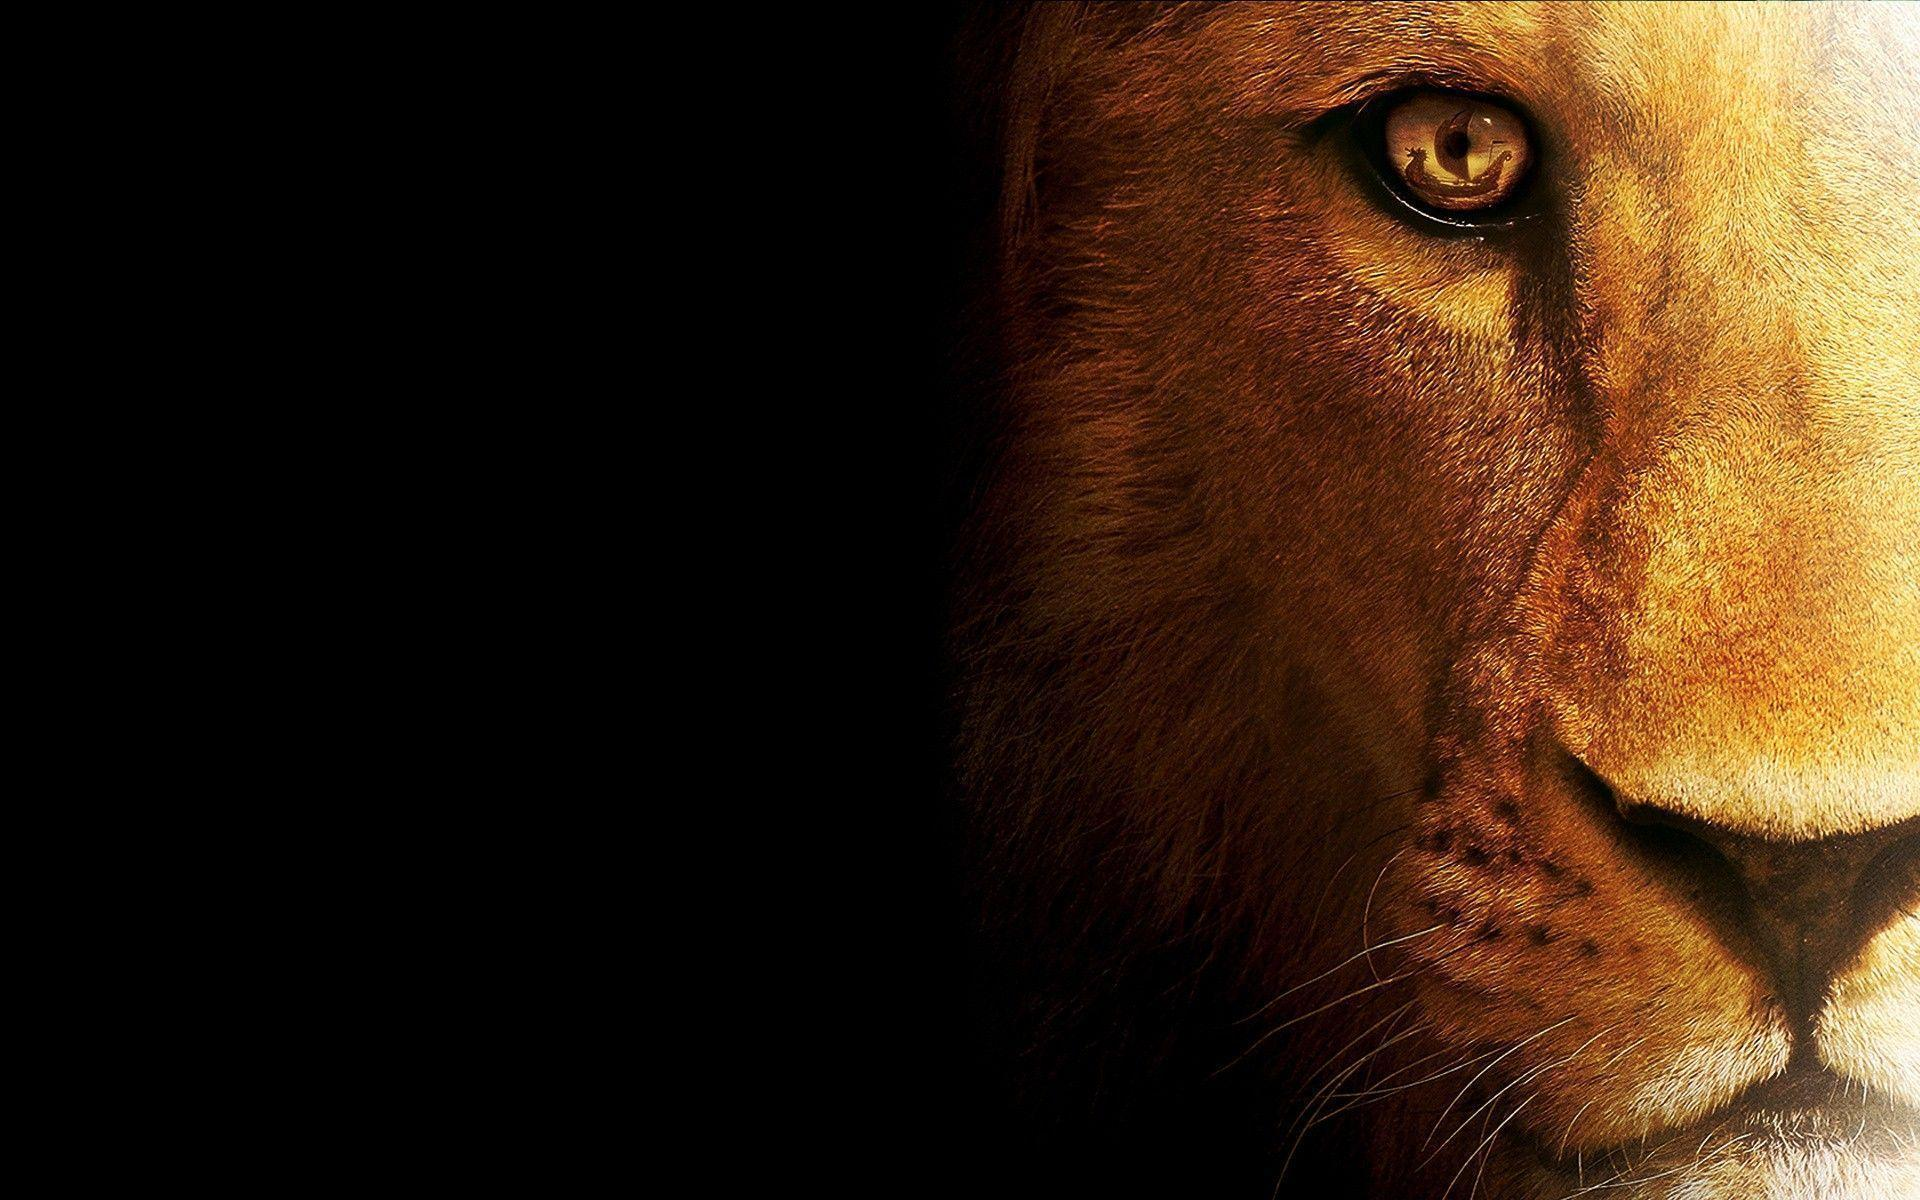 Lion Wallpapers | Free Download new wild animals cub HD Desktop Images